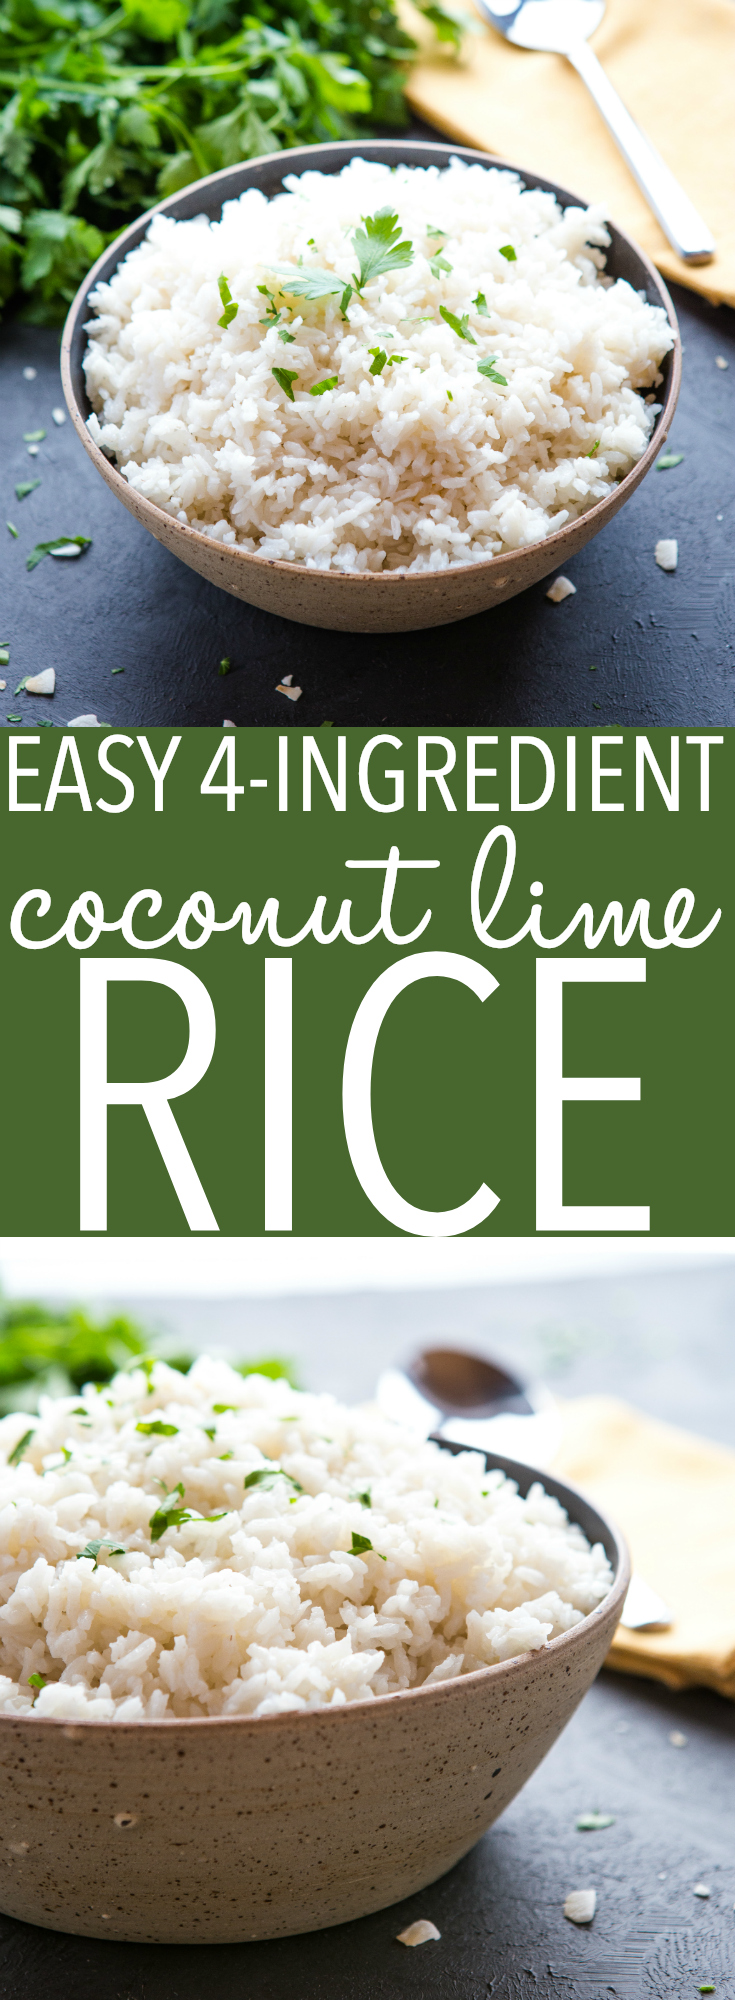 This Easy Coconut Lime Rice is the perfect side dish for all your favourite Asian-style meals! Make it in under 20 minutes with only a few simple ingredients! Recipe from thebusybaker.ca! #rice #coconut #lime #dairyfree #sidedish #vegan #vegetarian #glutenfree #healthy #cleaneating #homemade #asian via @busybakerblog